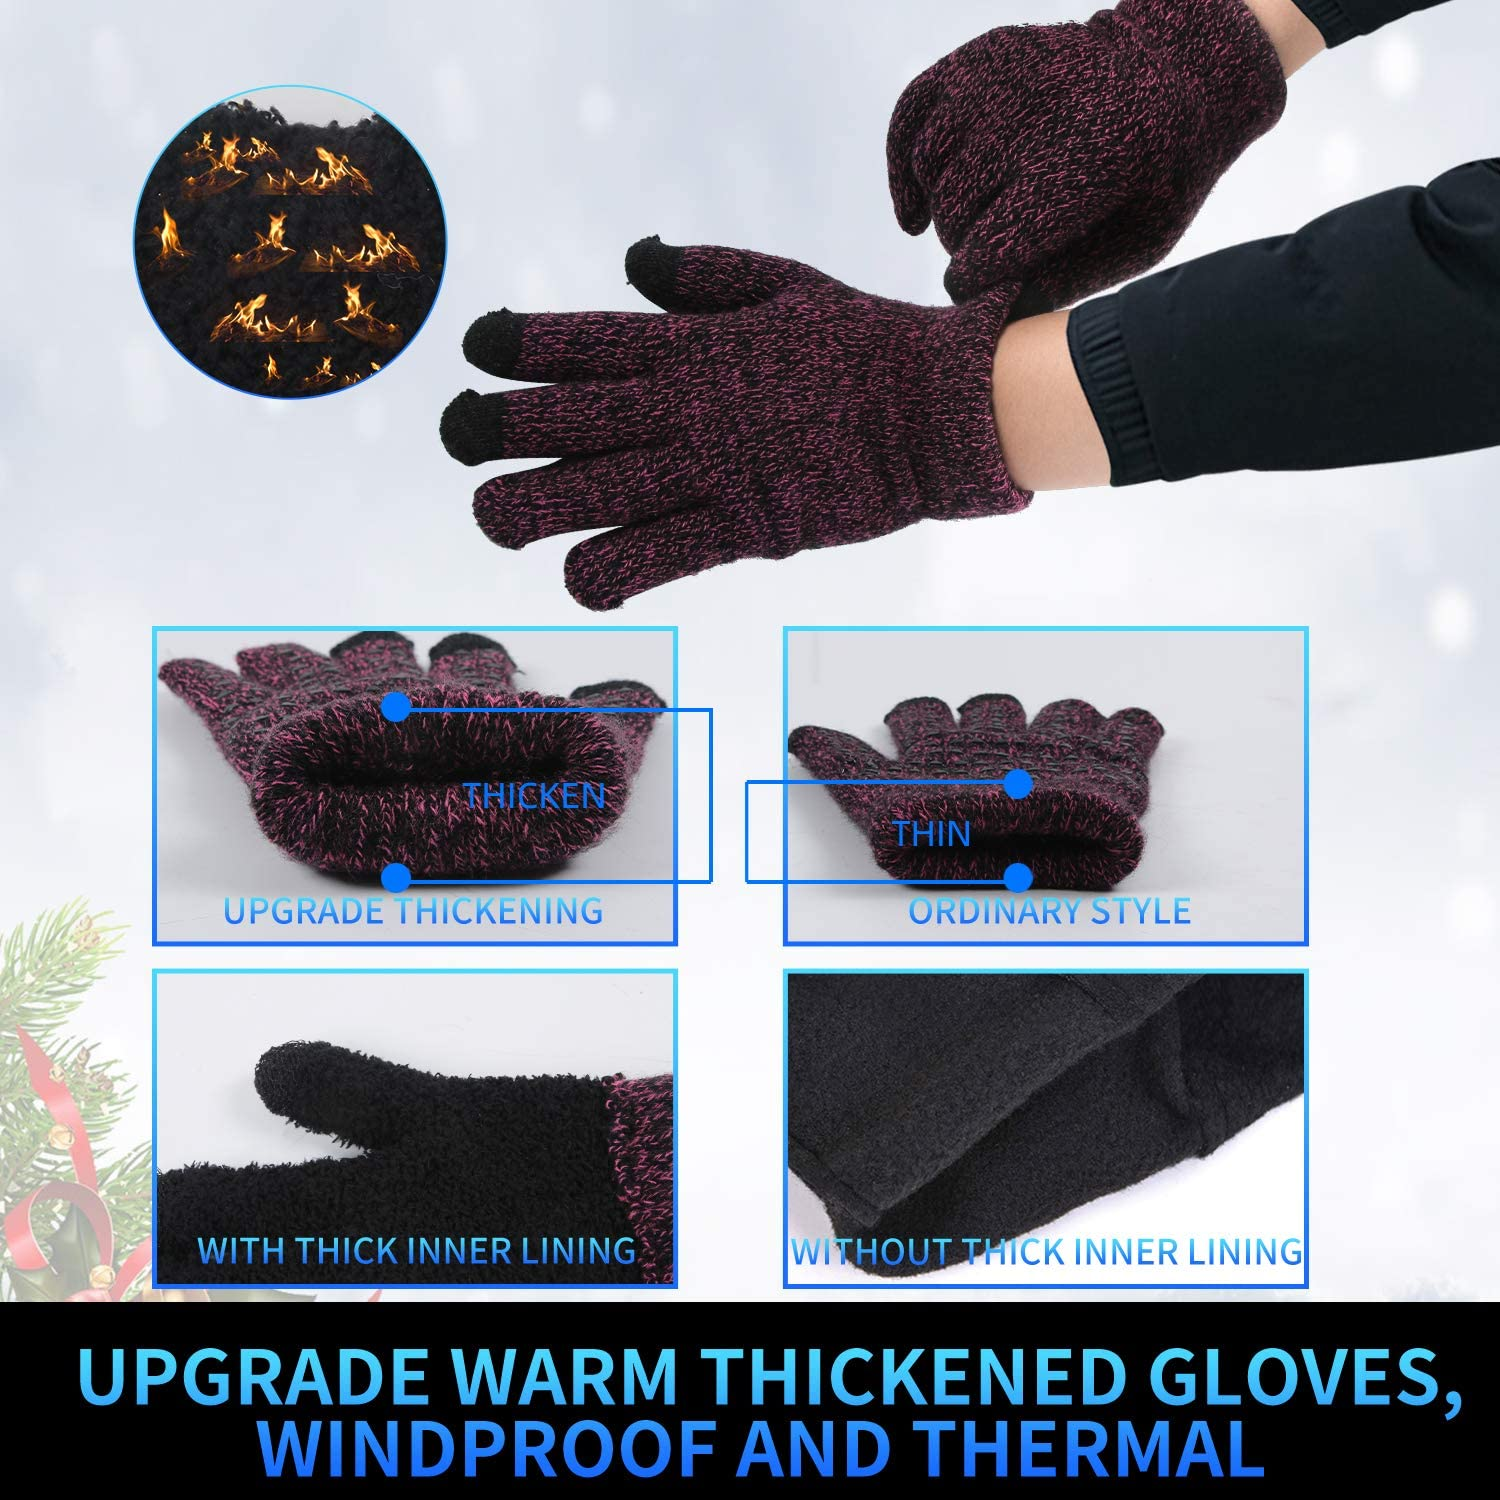 Fycert Knitted Warm Touch Screen Gloves Cold Resistant Non Slip Plus Velvet Thick Gloves for Autumn and Winter Outdoor Sports